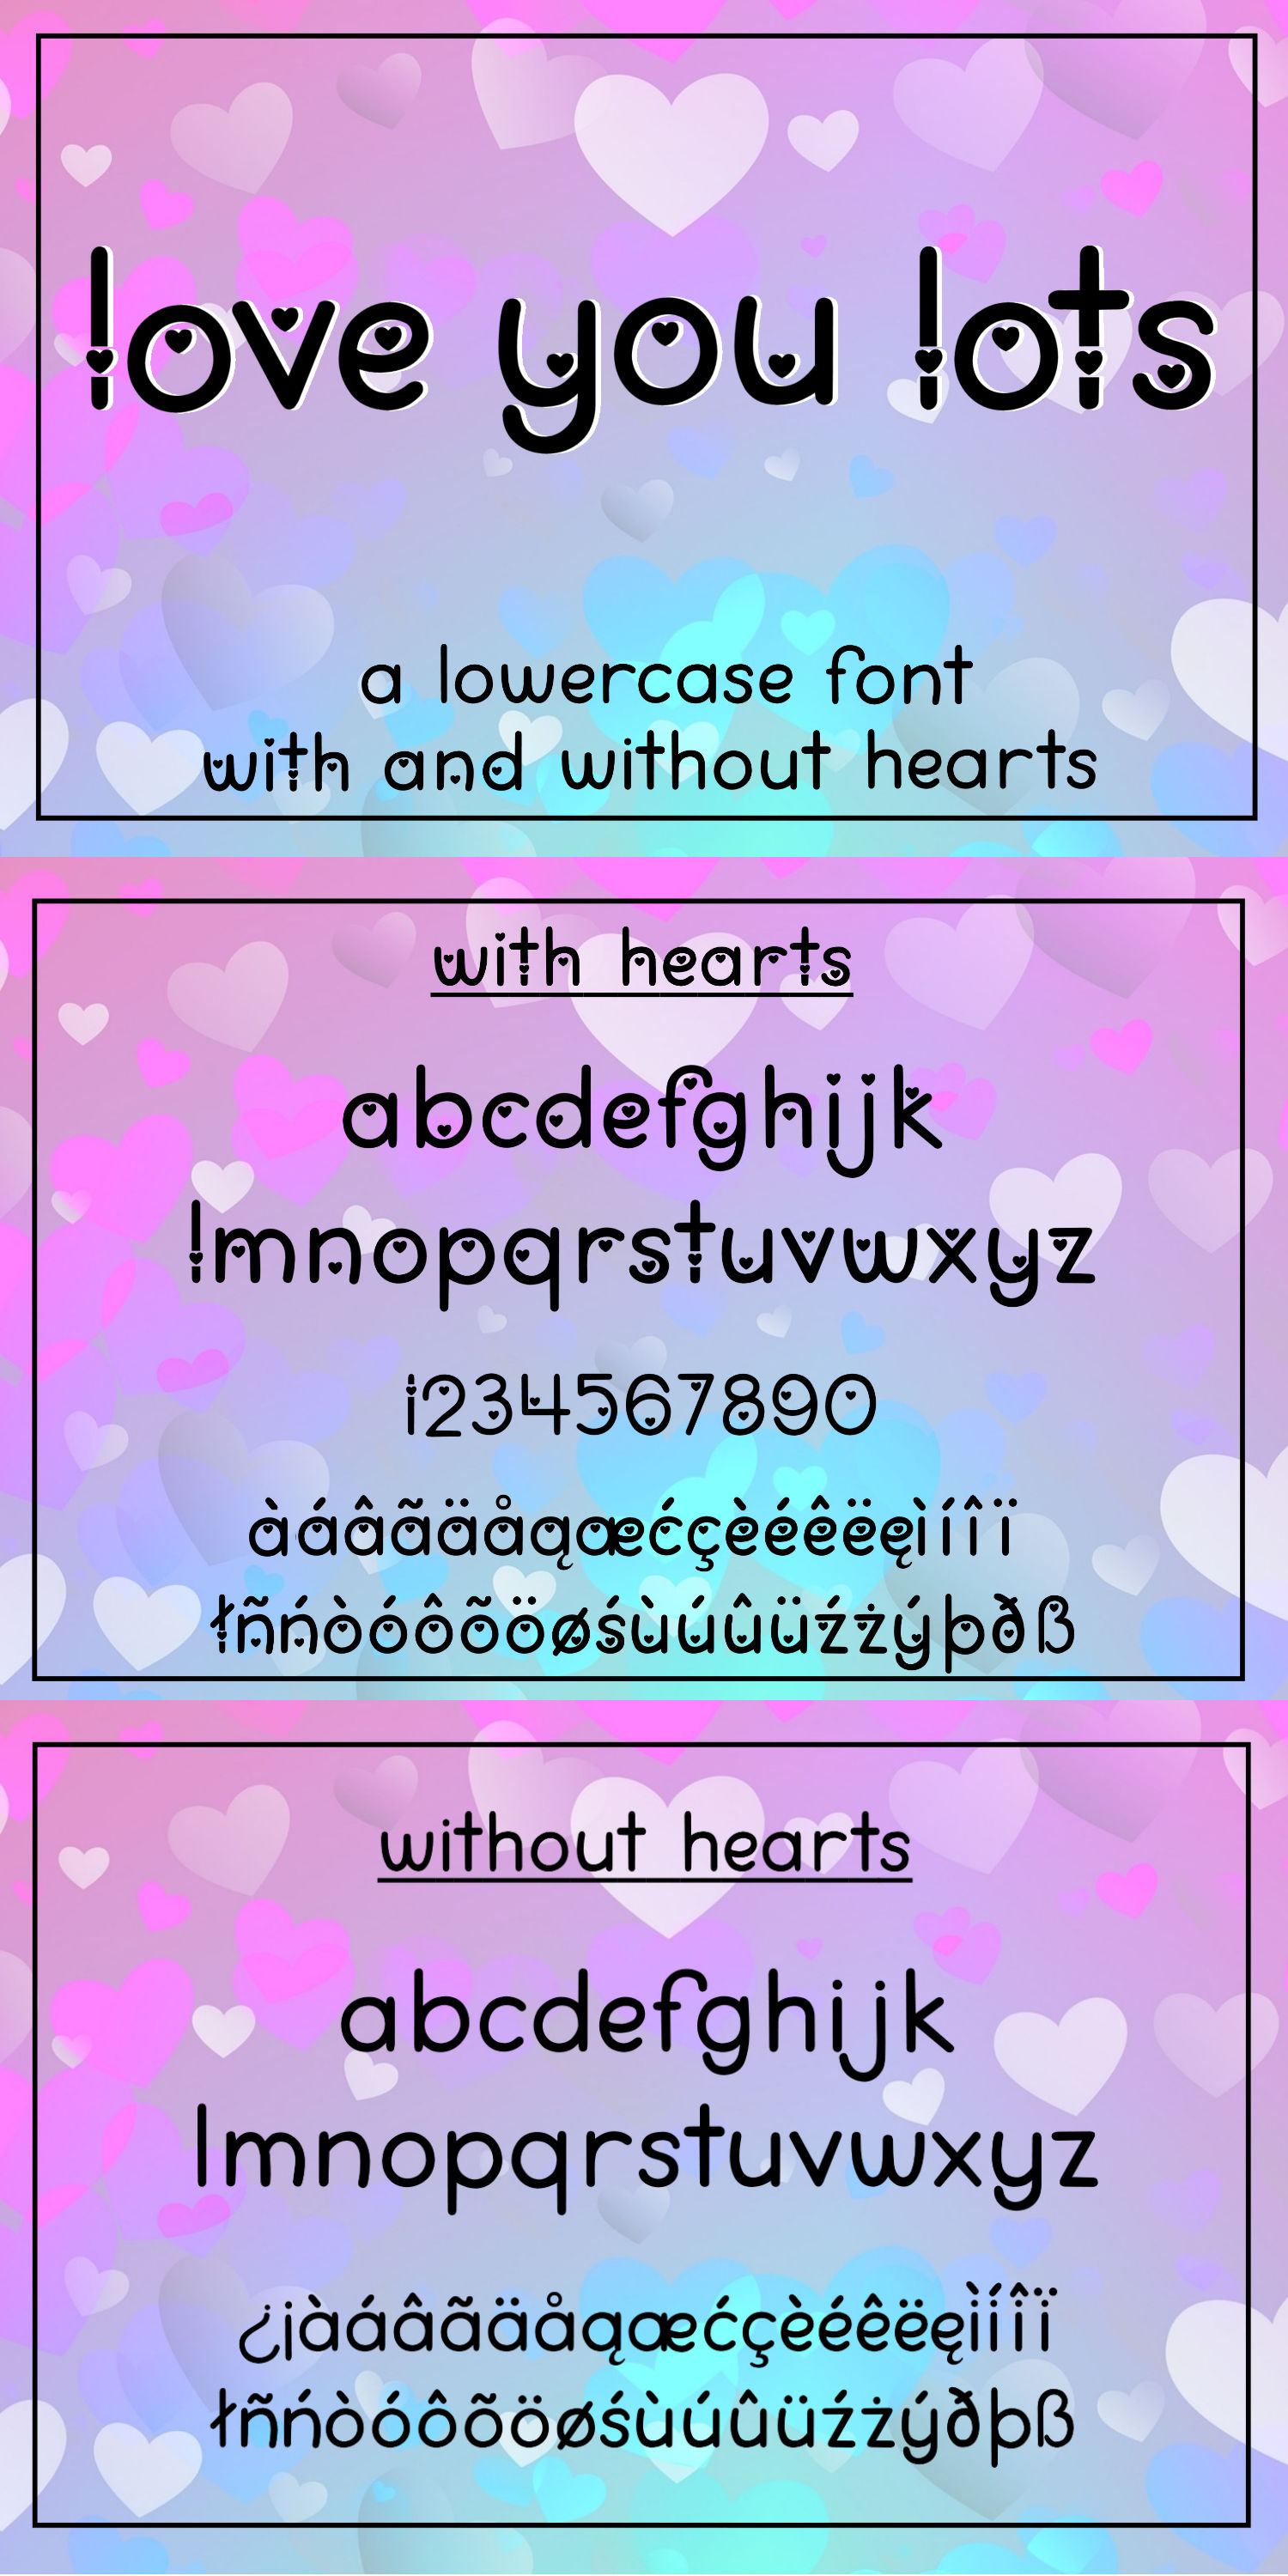 Love You Lots - a lowercase font with and without hearts example image 8